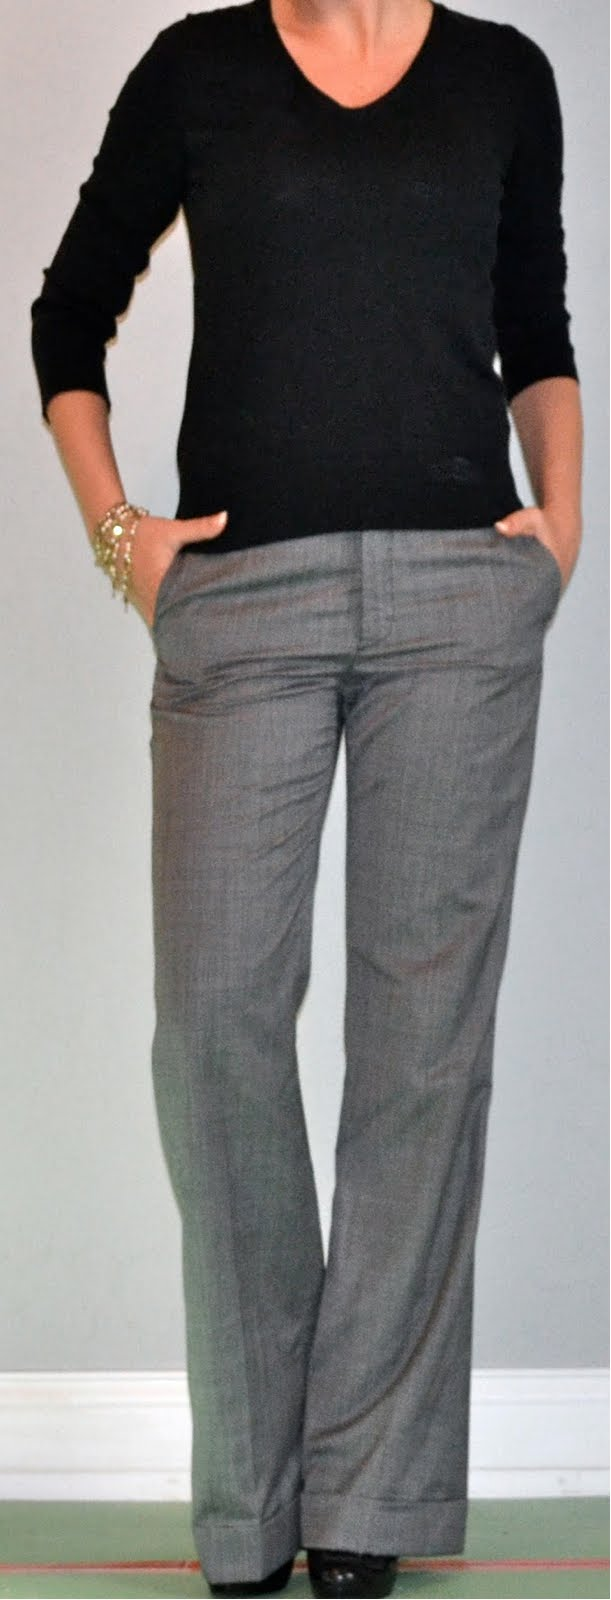 Lastest Pants For Women Online Pi Pants  1080x1440  Jpeg